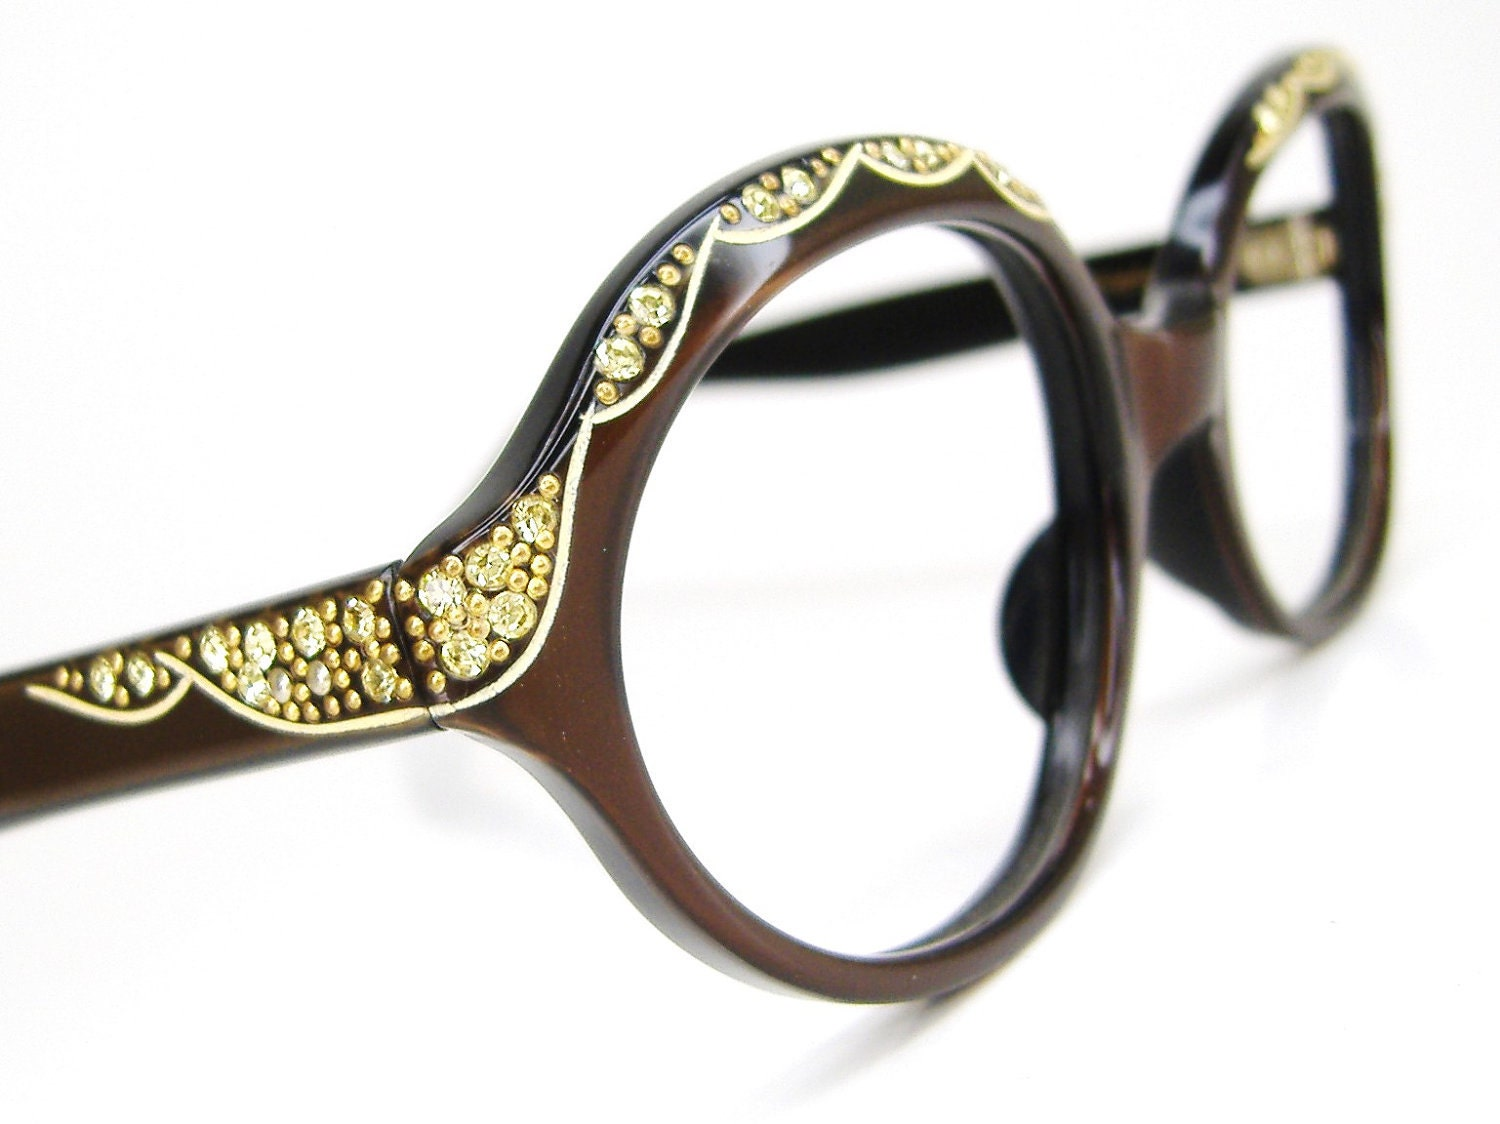 Glasses Frame Oblong : Vintage 60s Oval Cateye Eyeglasses Frame With Yellow